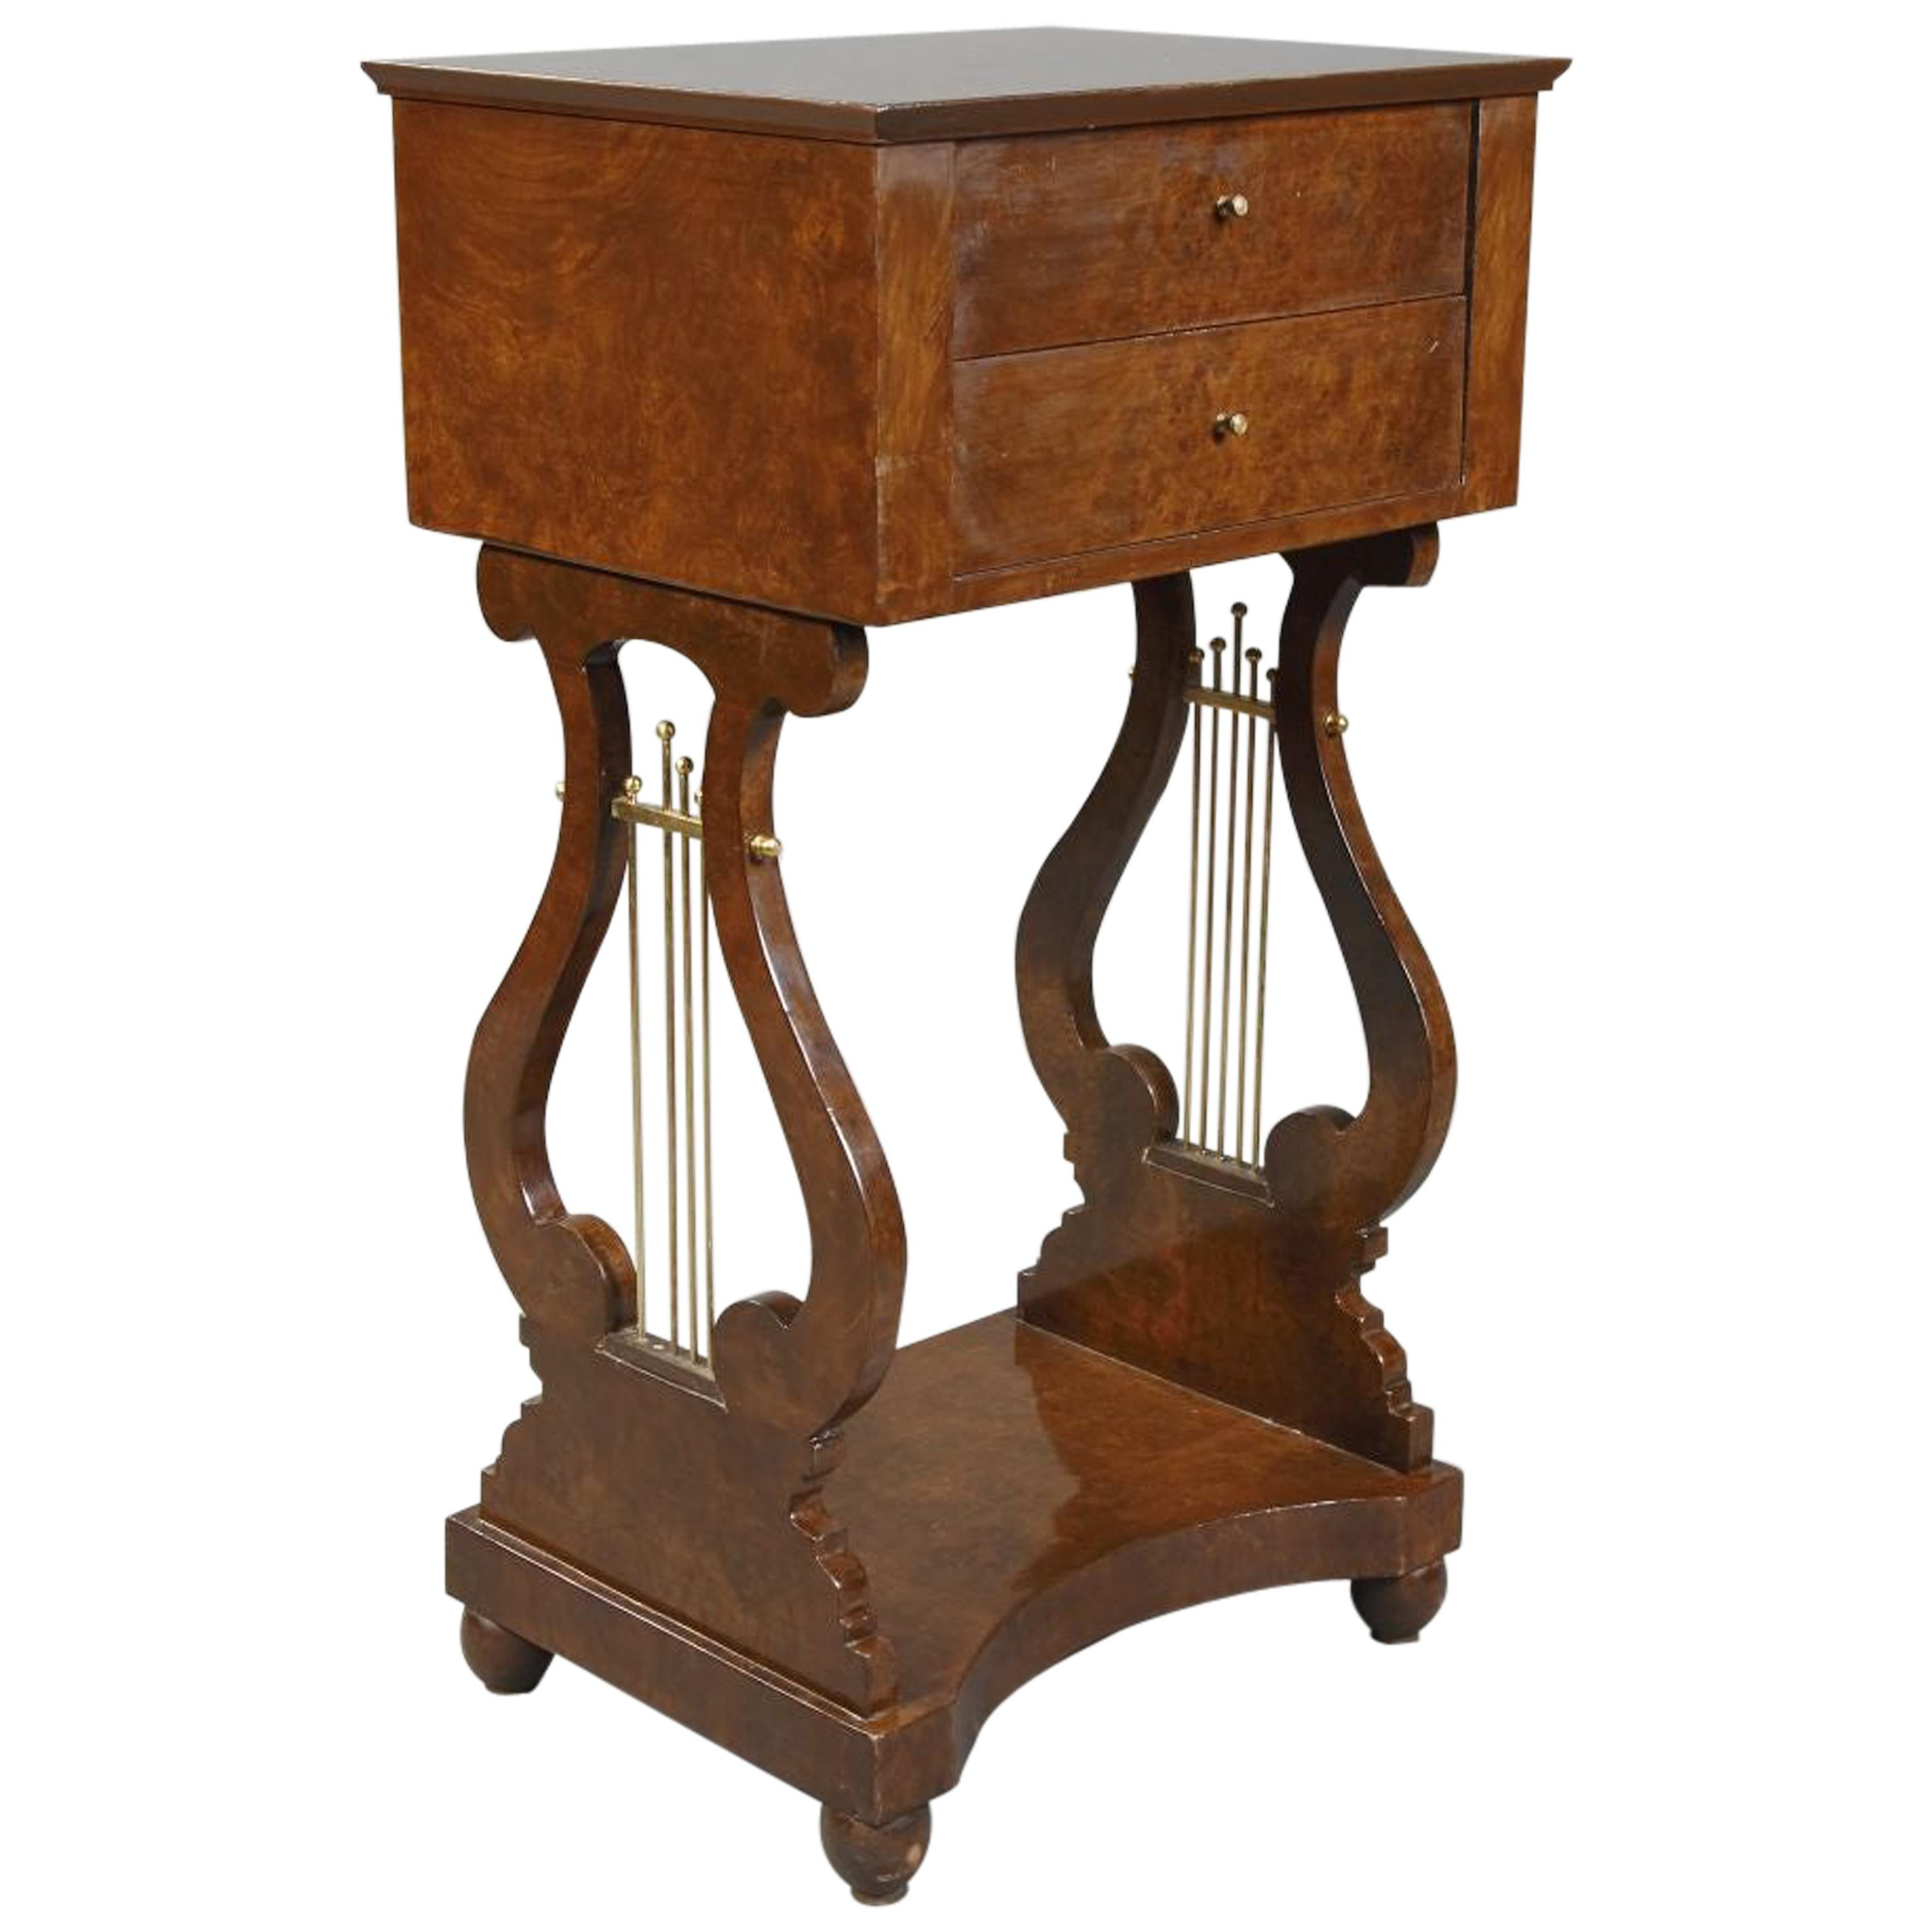 d8137163b Sewing Tables - 236 For Sale on 1stdibs